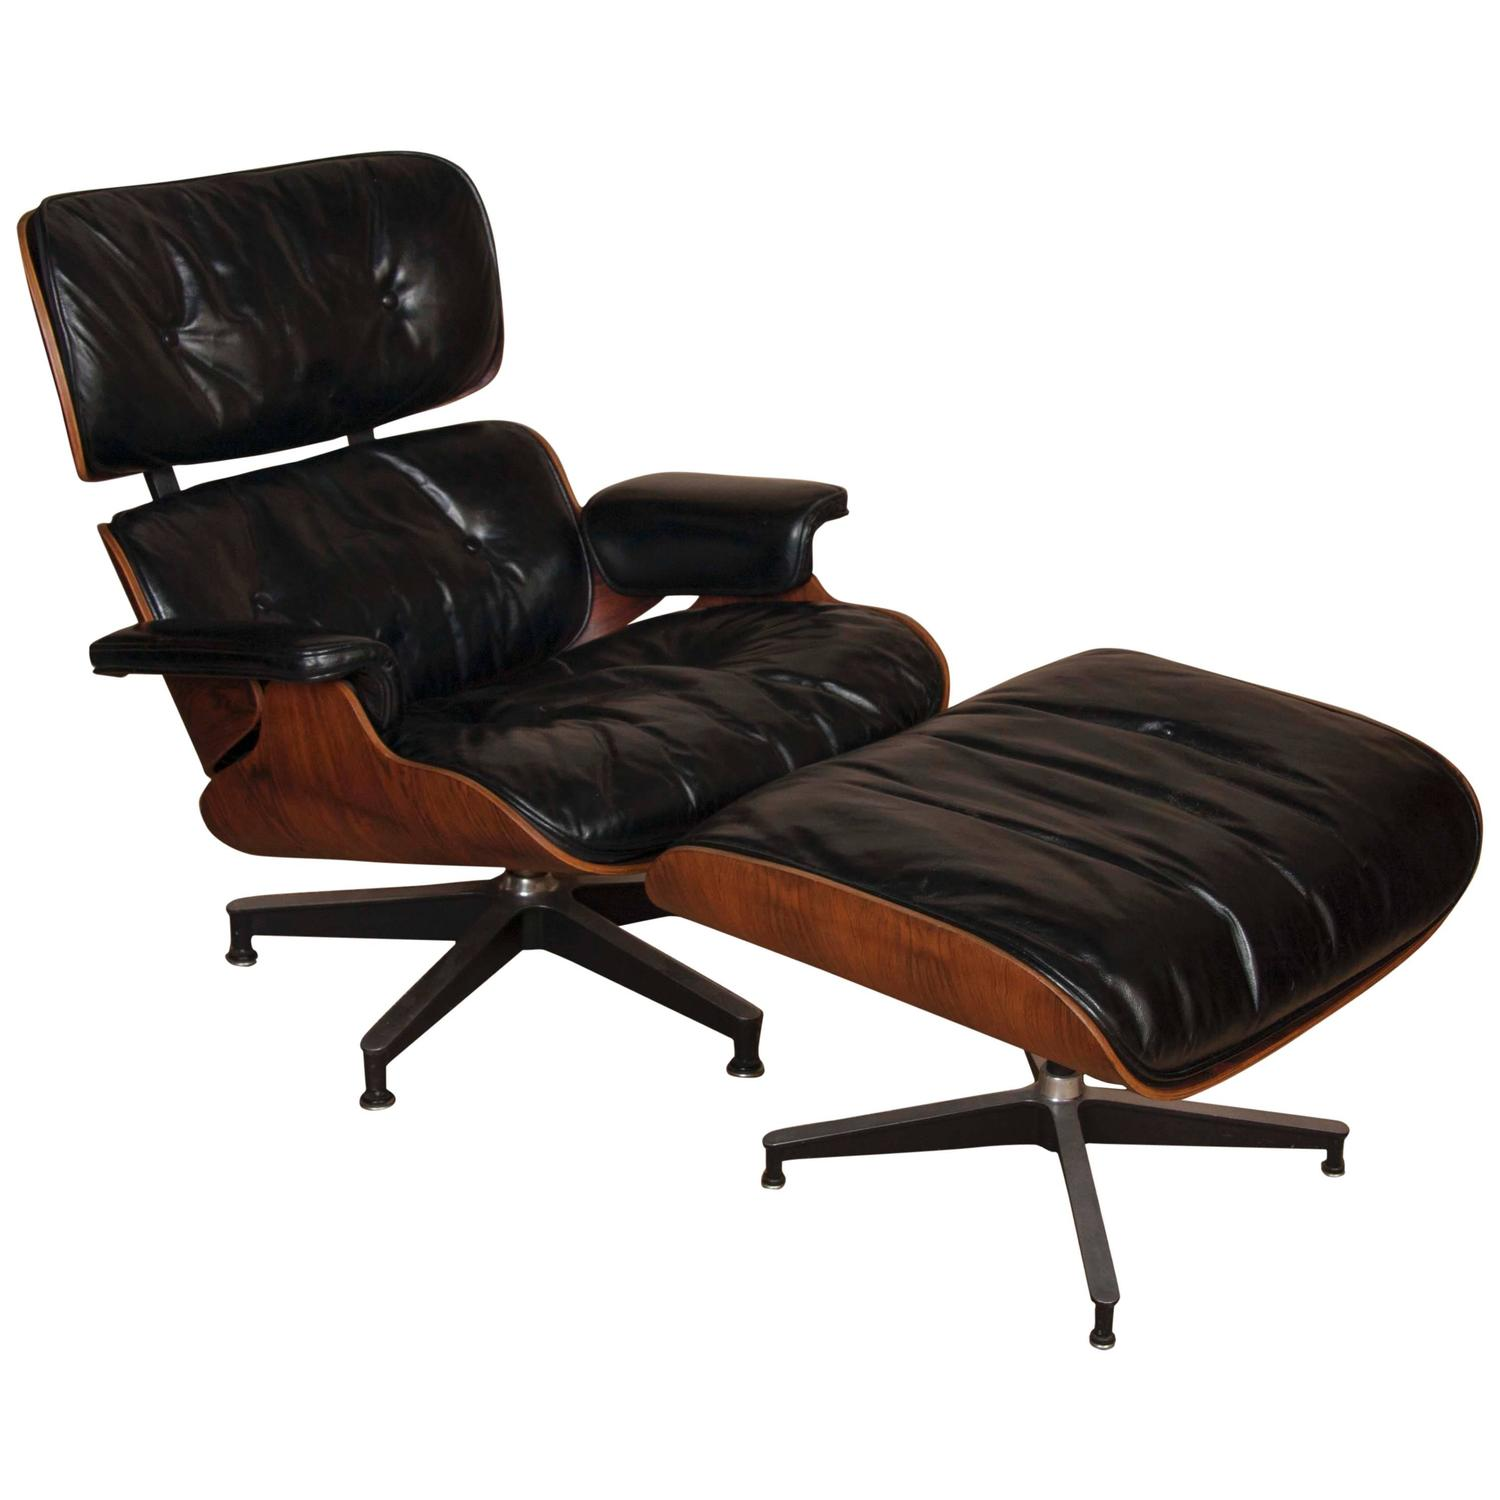 Charles Eames Lounge Chair Charles And Ray Eames Lounge Chair And Ottoman At 1stdibs